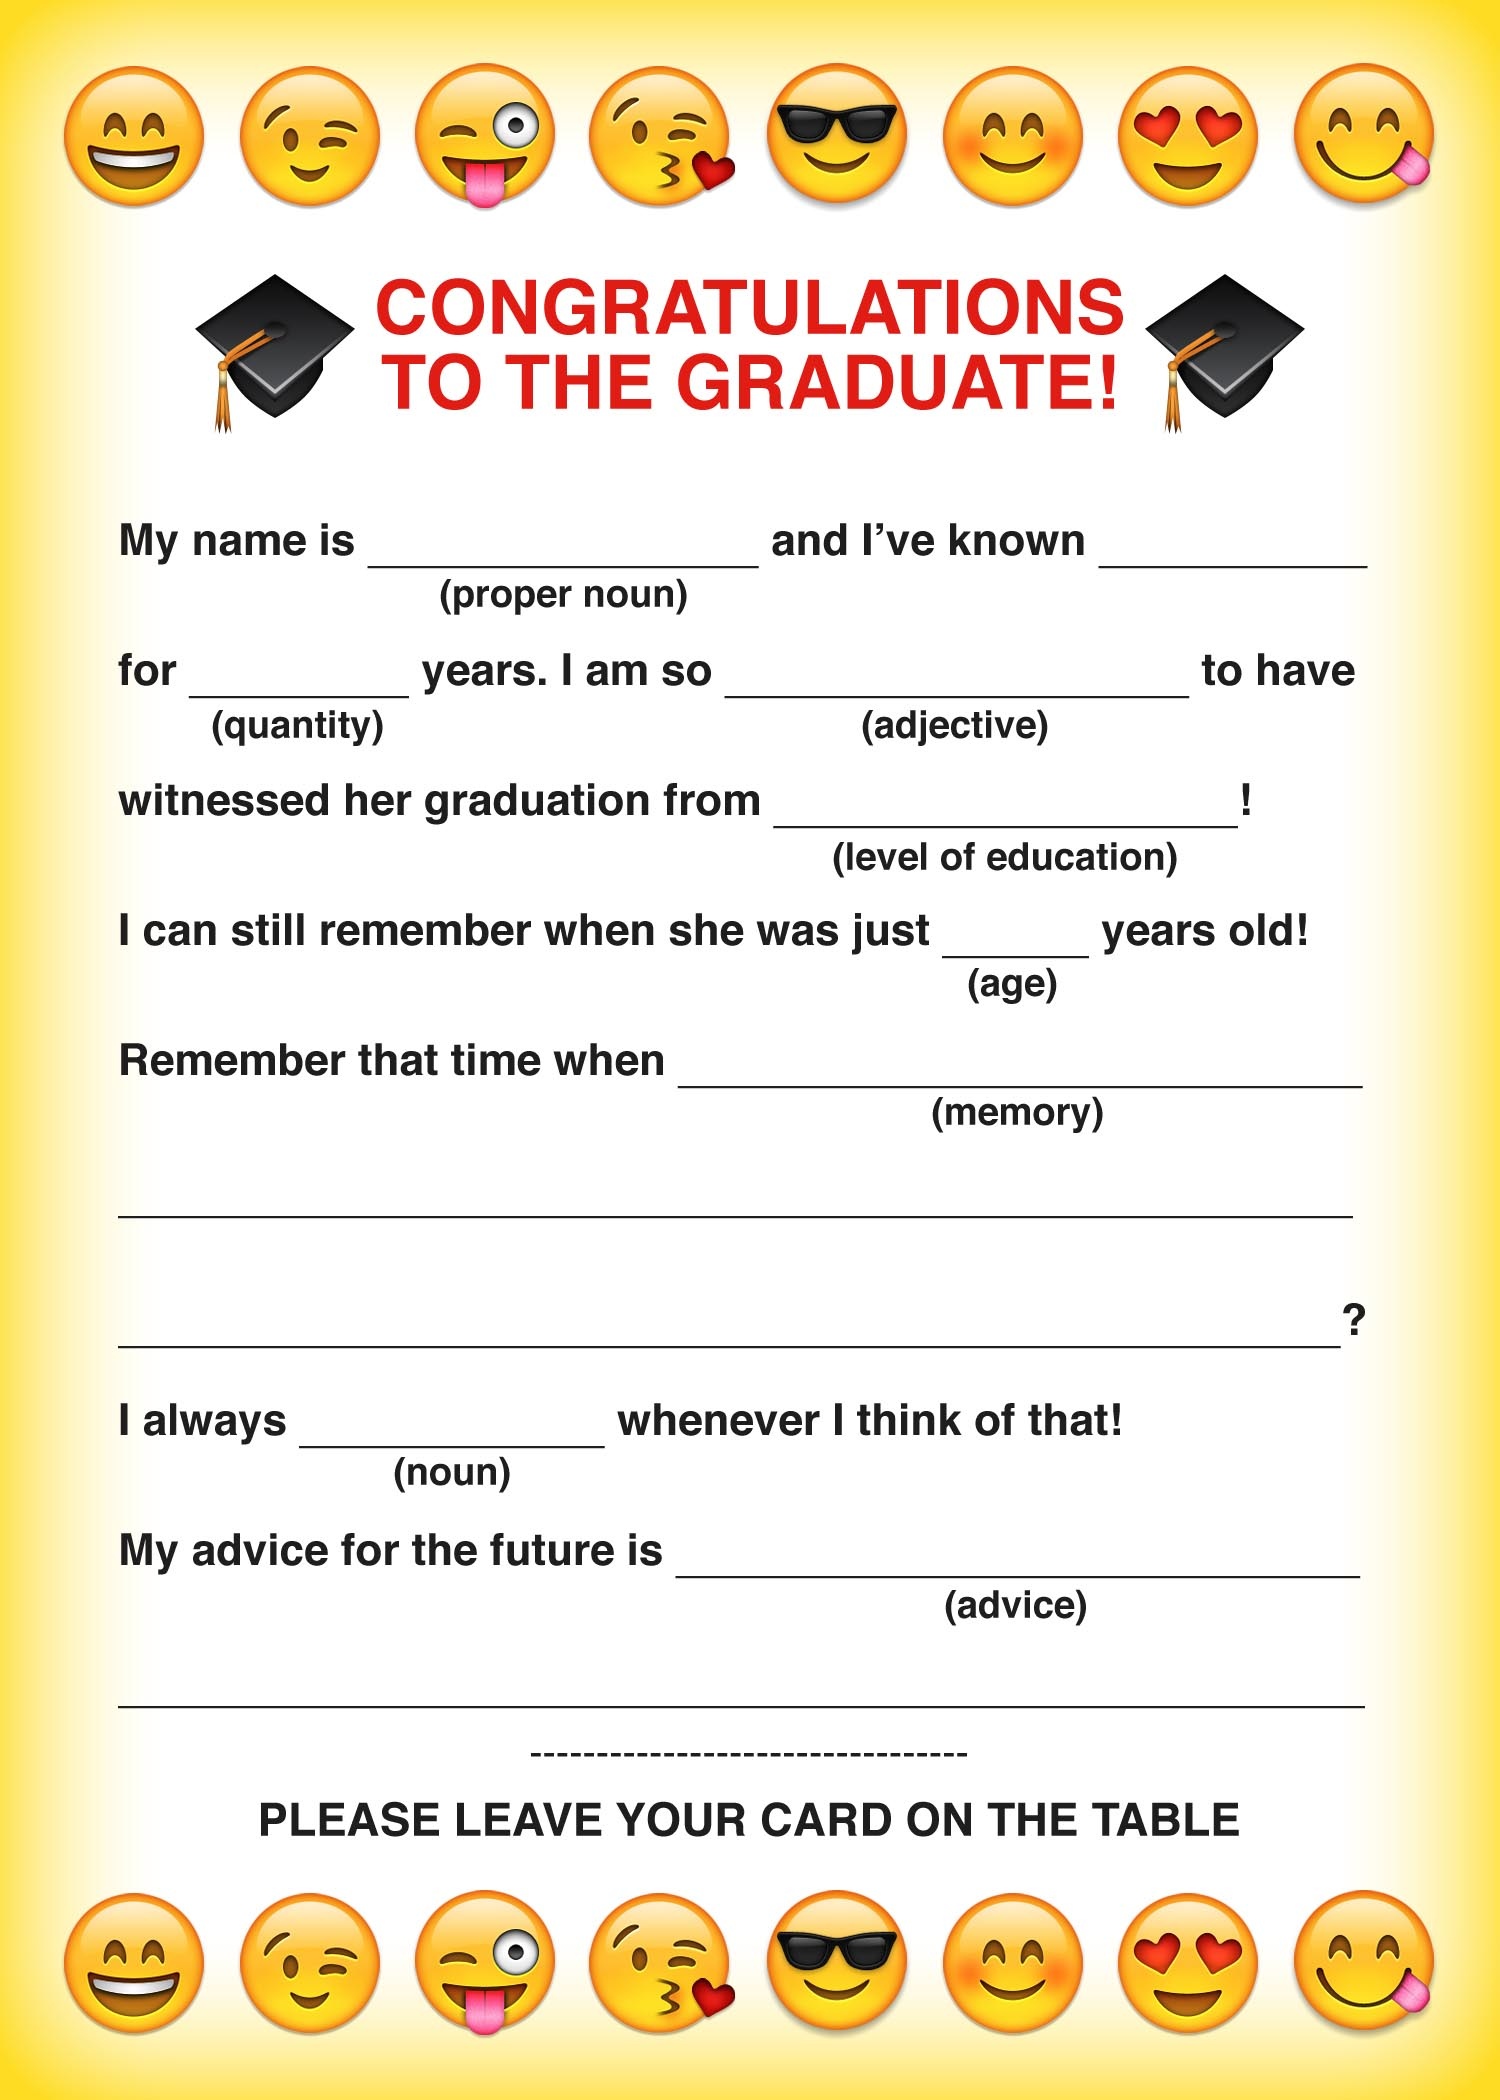 photograph relating to Advice for the Graduate Free Printable referred to as Bash Ease Absolutely free Printable Emoji Commencement Bash Insane